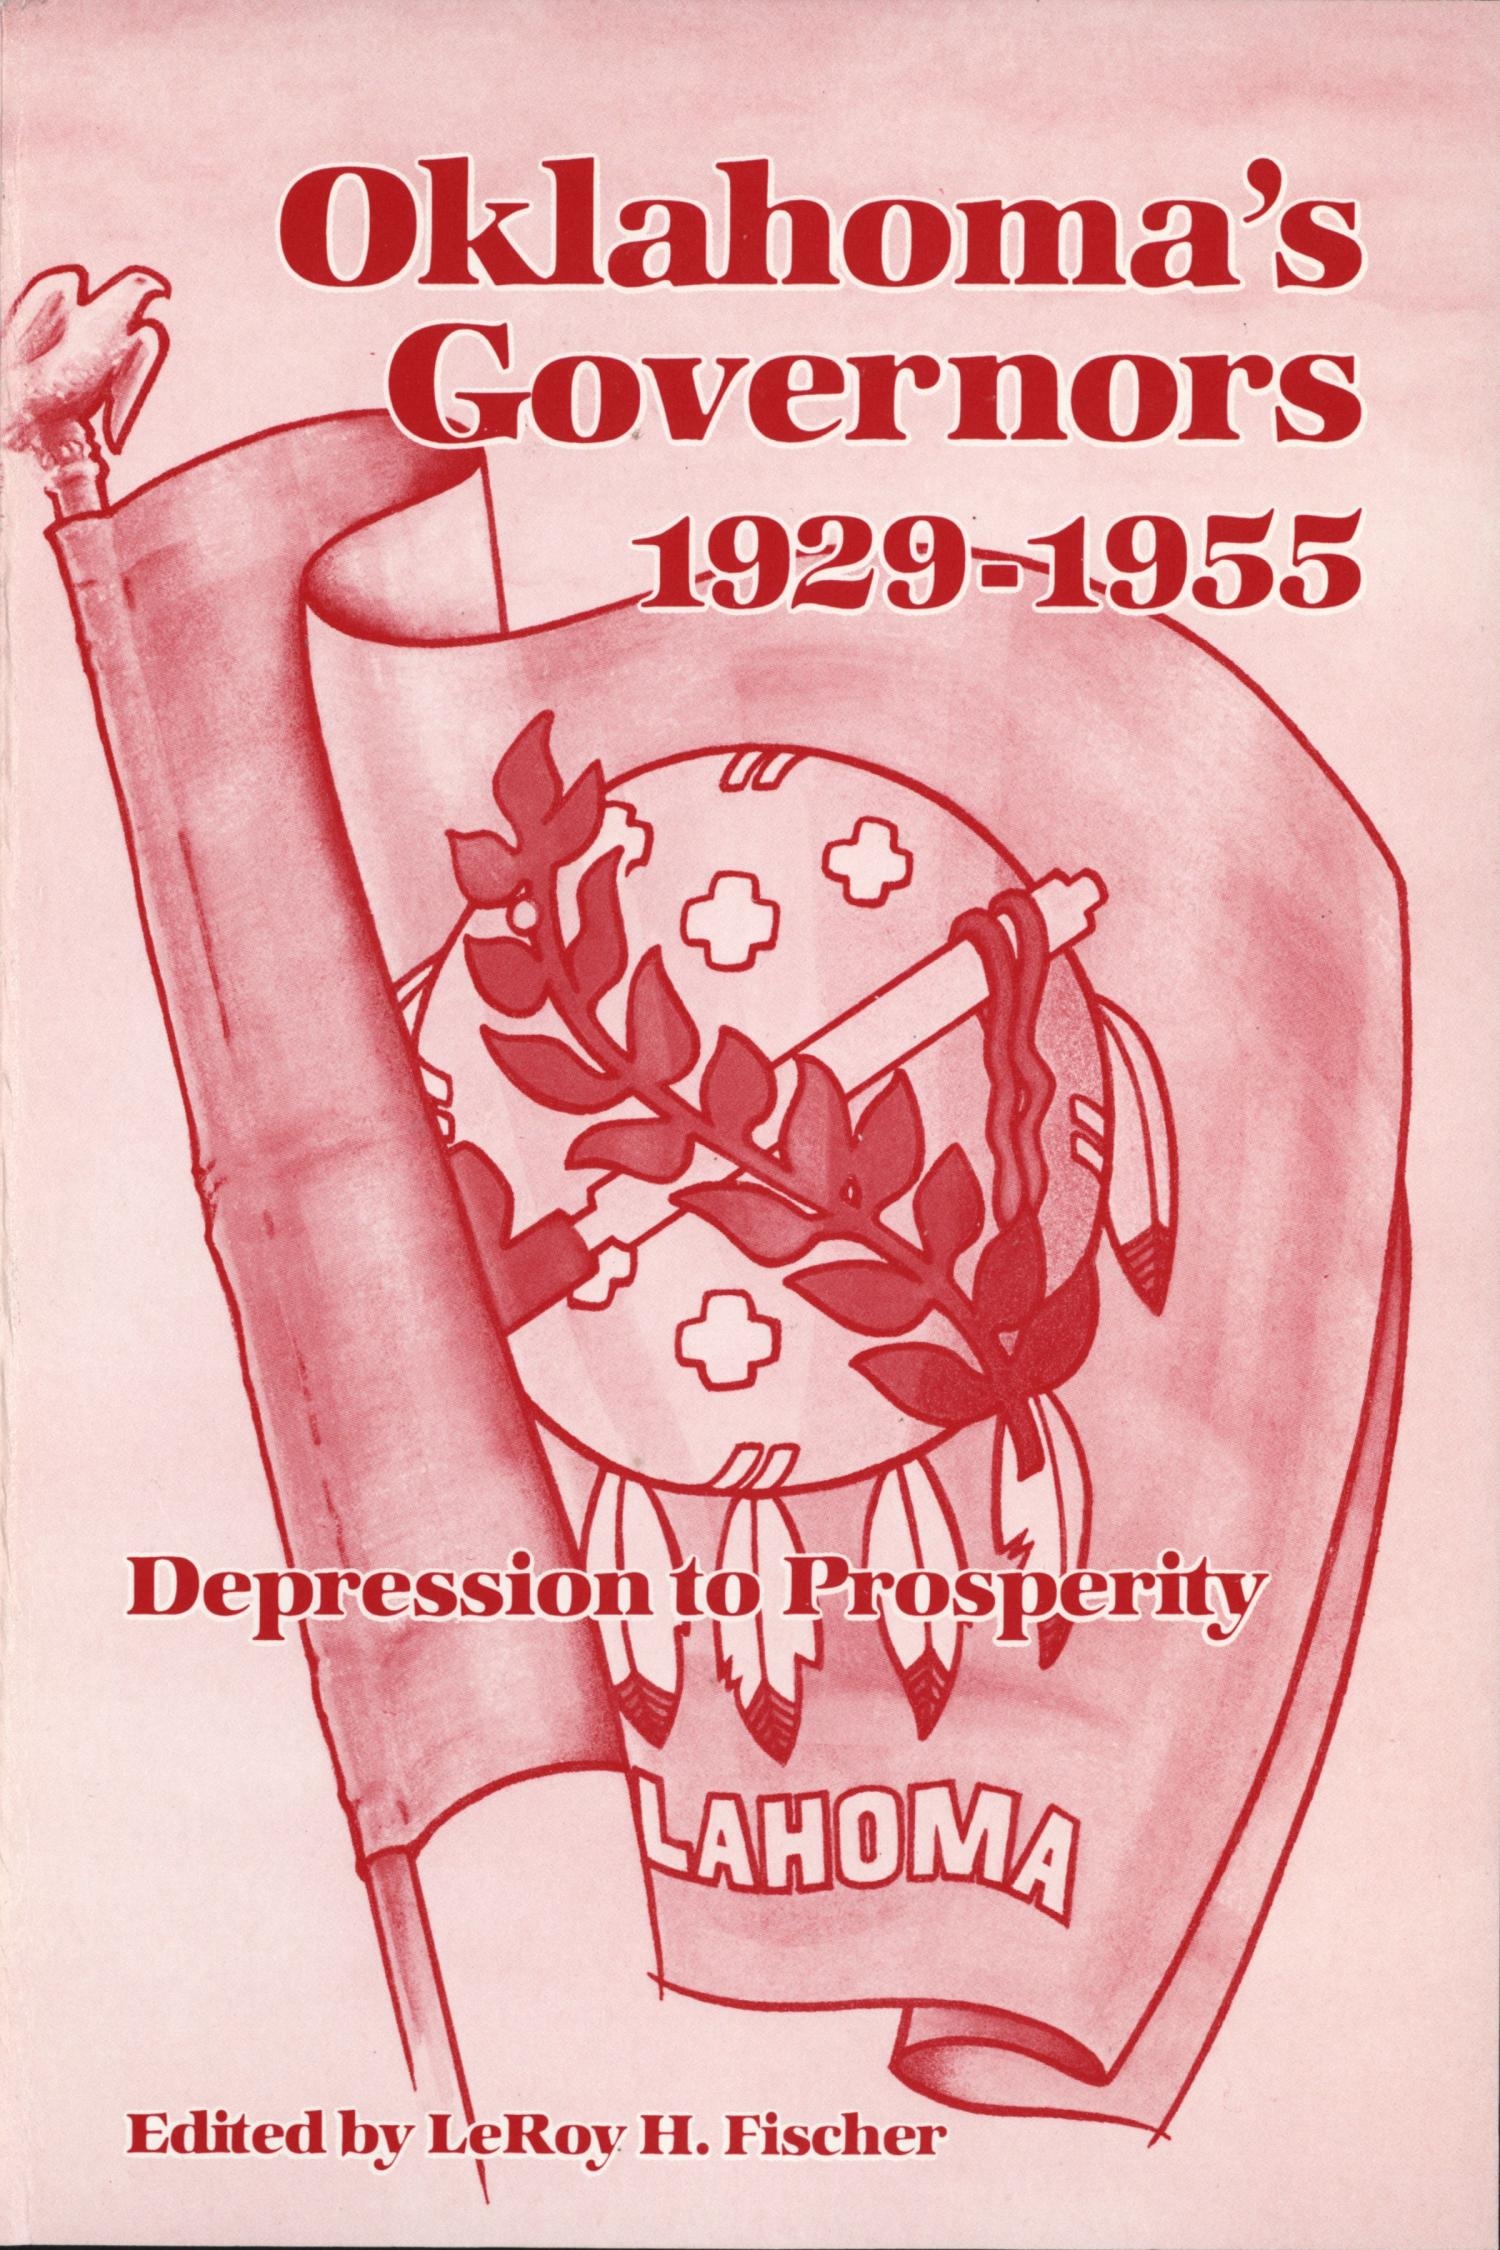 Oklahoma's Governors, 1929-1955: Depression to Prosperity                                                                                                      Front Cover